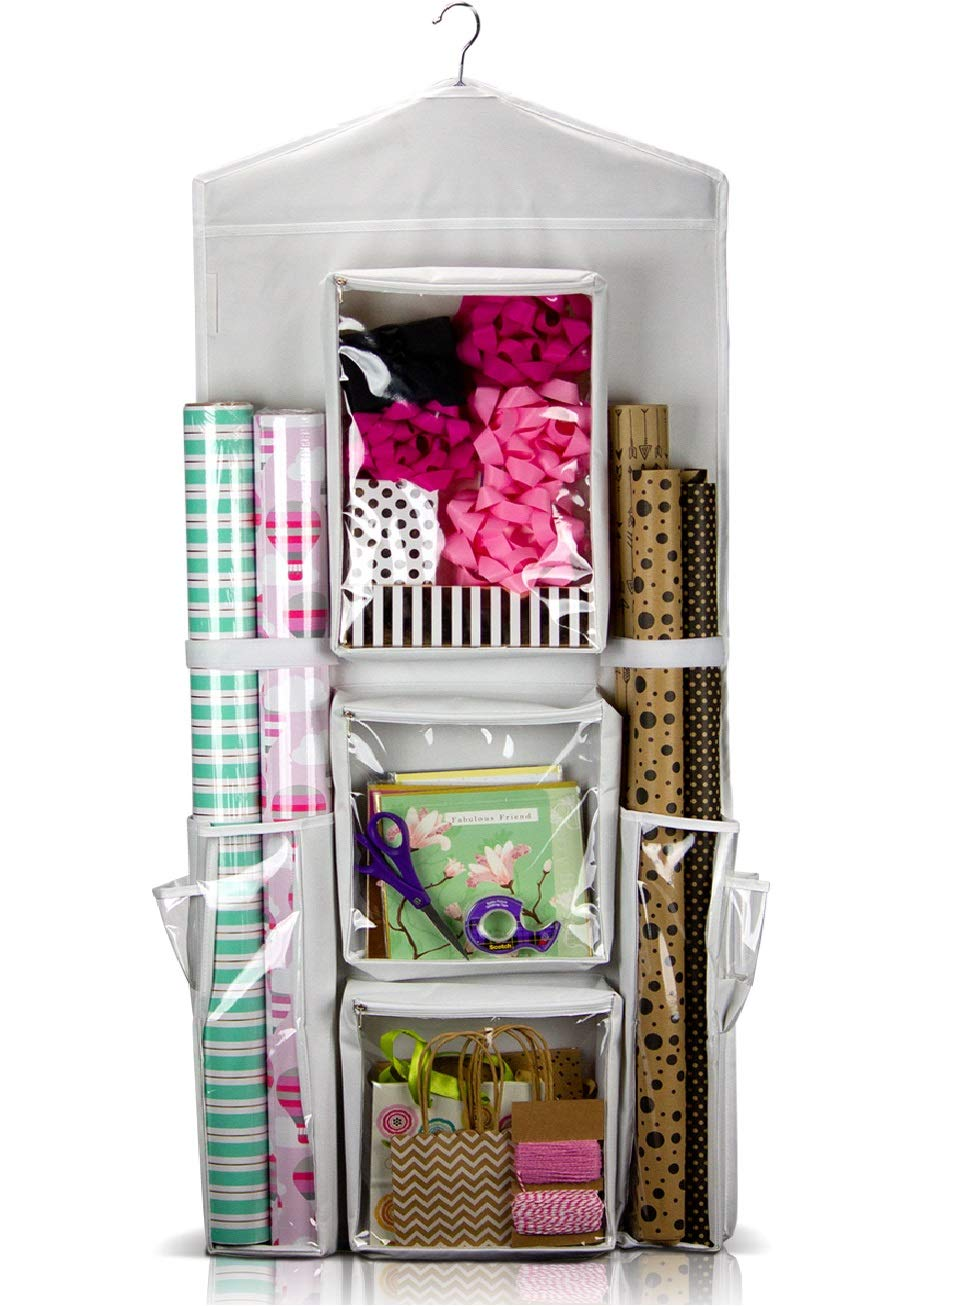 CARRIEBAX Double Sided Wrapping Paper Storage - for 40 Inch Gift Wrap Rolls - Easy Hanging Closet Gift Wrap Organizer with Large Pockets